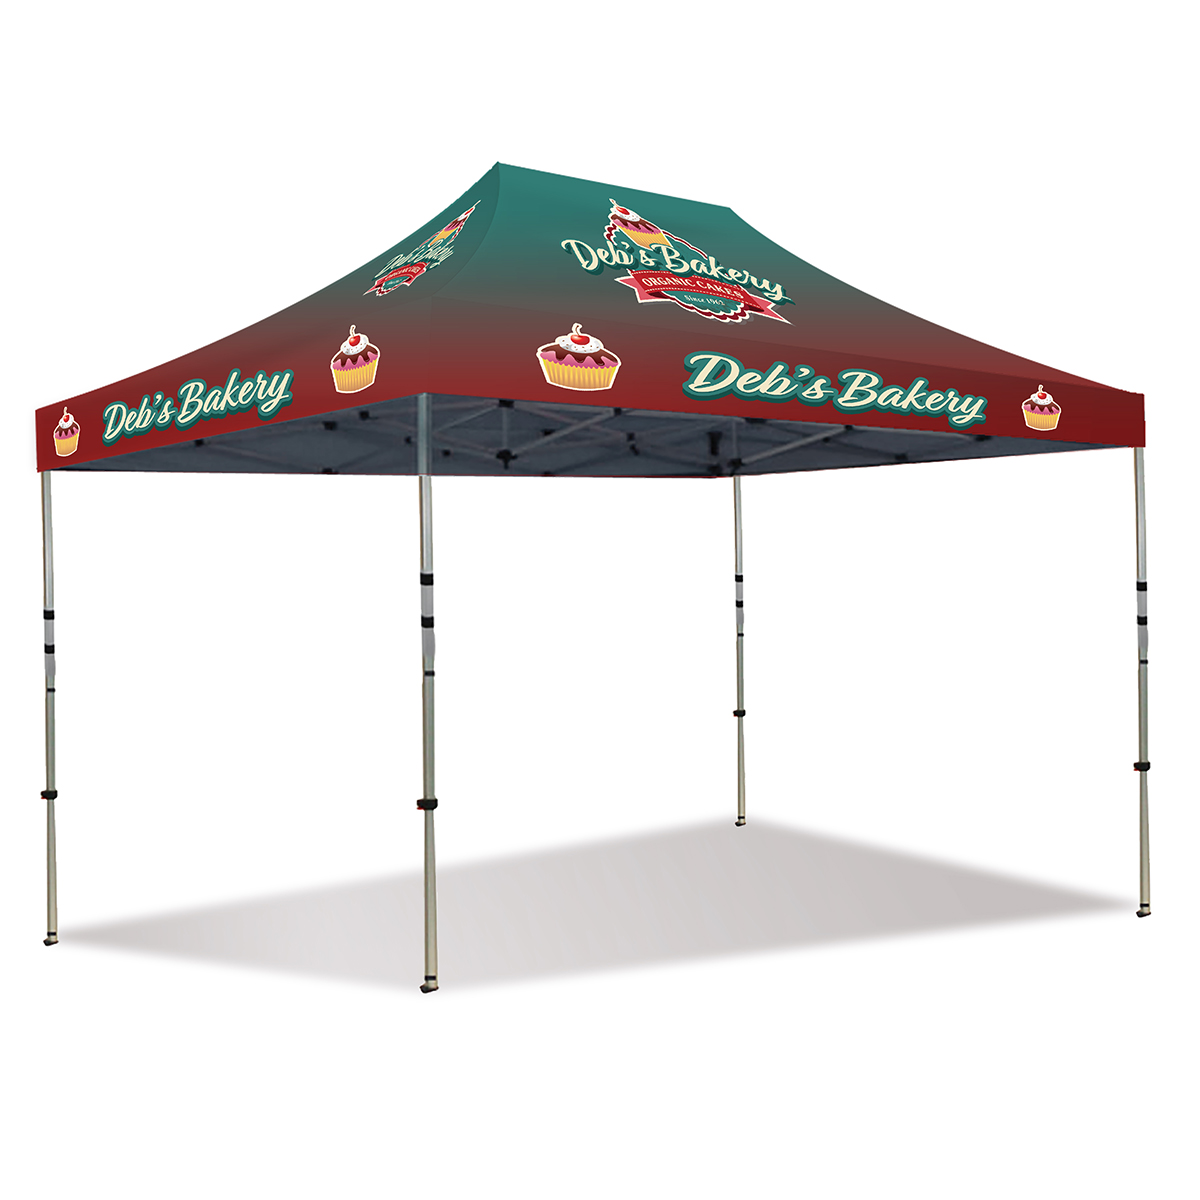 15ft Pop Up Canopy - Full Color - Deluxe